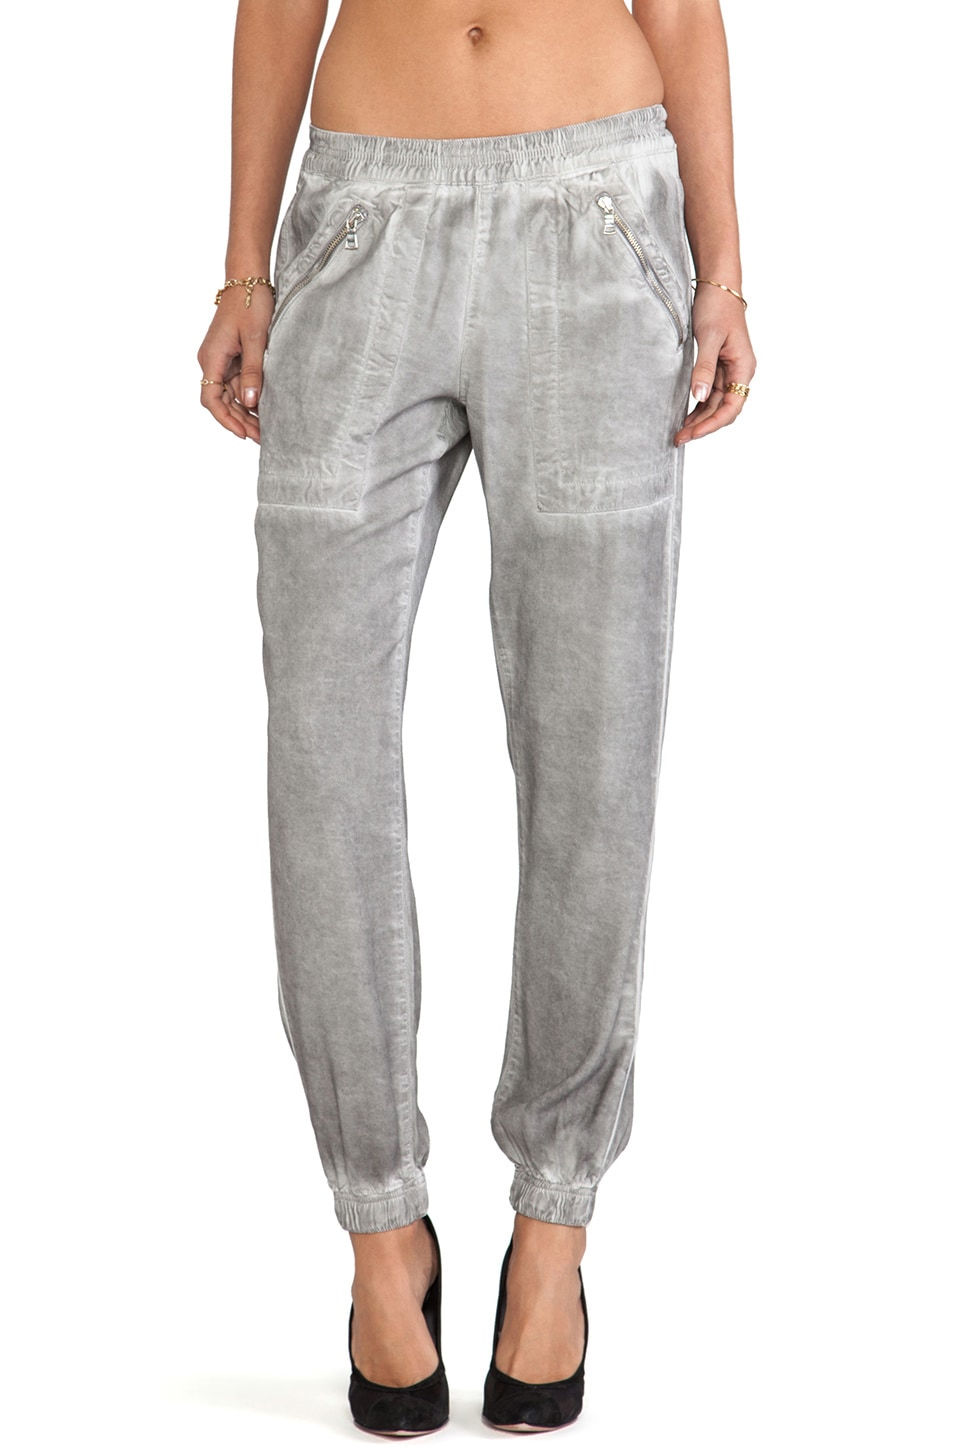 DWP Brody Pant in Slate Grey